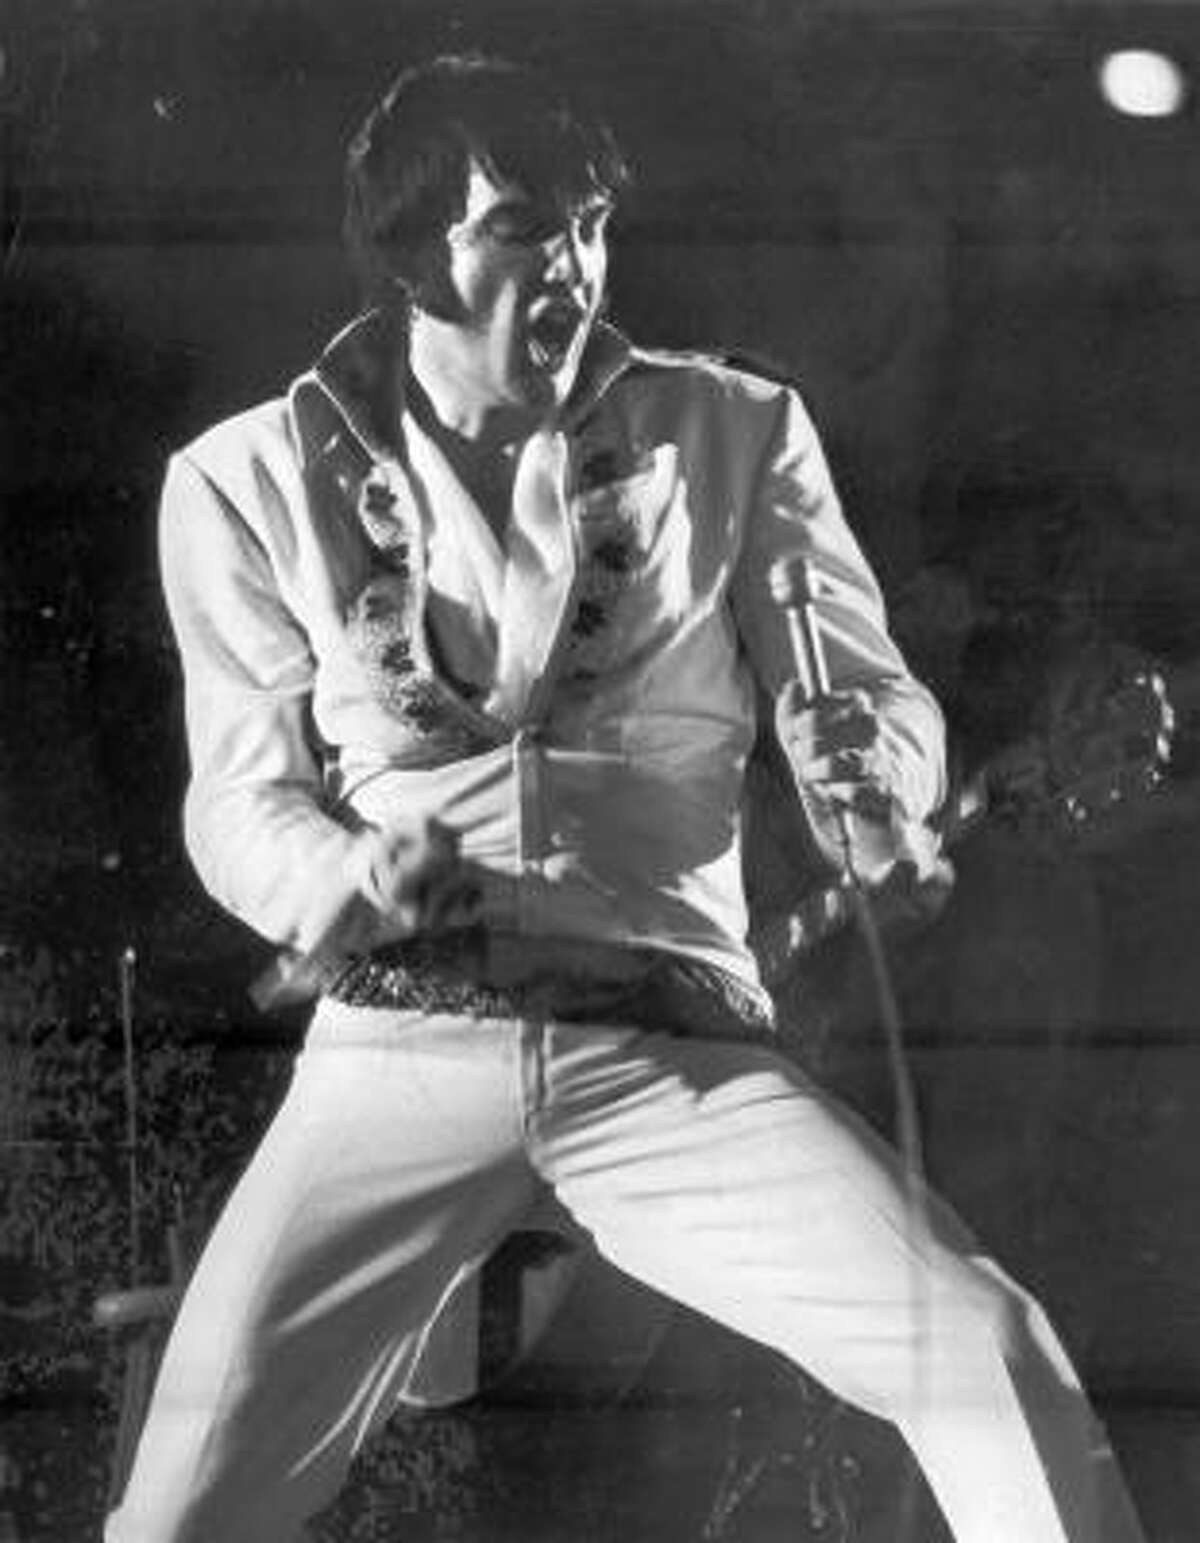 Elvis, performing at the rodeo at the Astrodome on Feb. 27, 1970, set an attendance record of 43,614 in one of five concerts here that year.